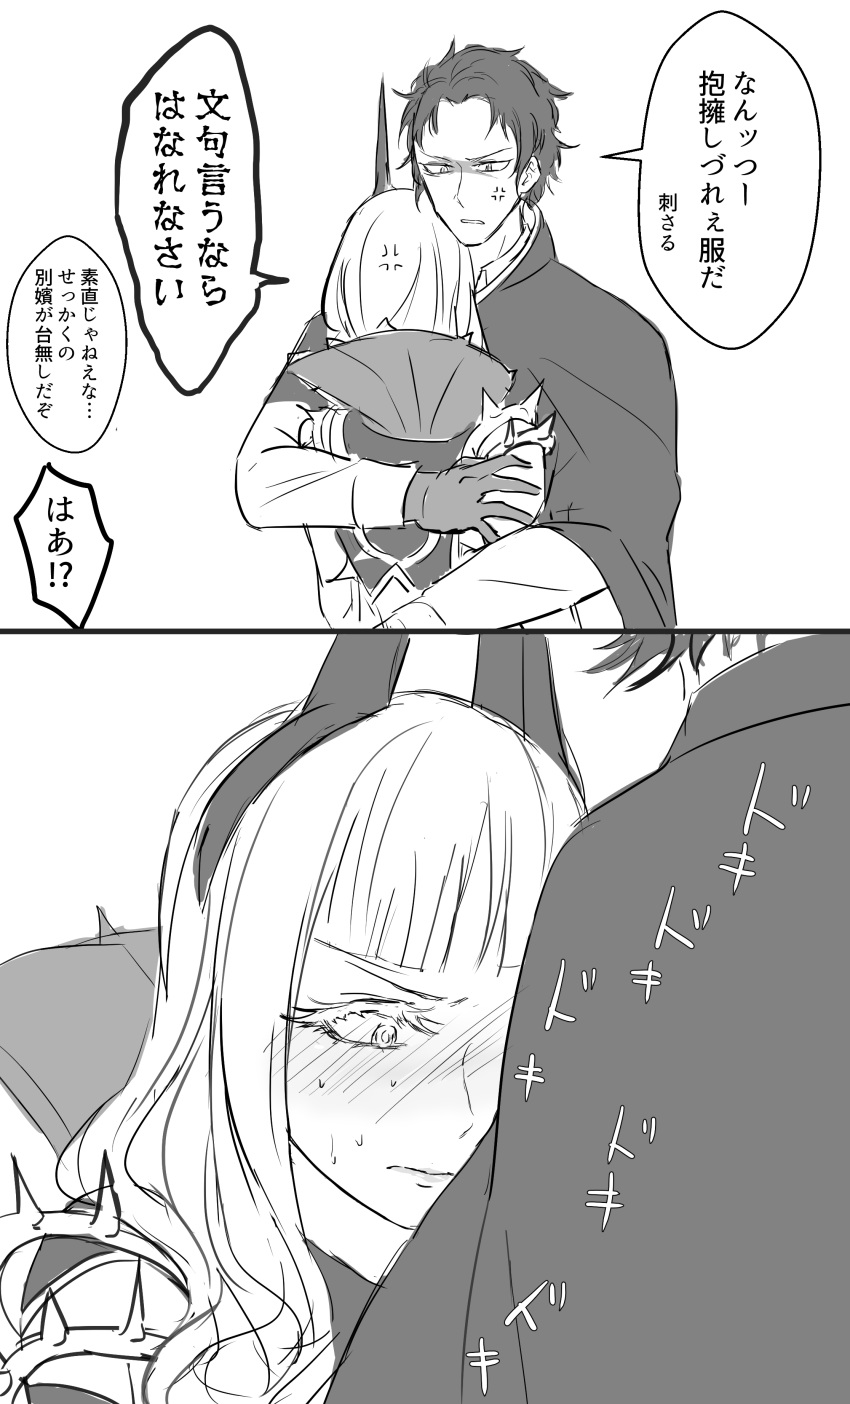 1girl 2koma absurdres anger_vein bangs blunt_bangs blush carmilla_(fate/grand_order) cloak comic fate/grand_order fate_(series) gloves greyscale high_collar highres hijikata_toshizou_(fate/grand_order) horns hug long_hair looking_at_another looking_down monochrome nose_blush pleated_skirt shiina_(vuurrood) simple_background skirt speech_bubble spikes standing sweat talking thorns translation_request upper_body wavy_hair white_background